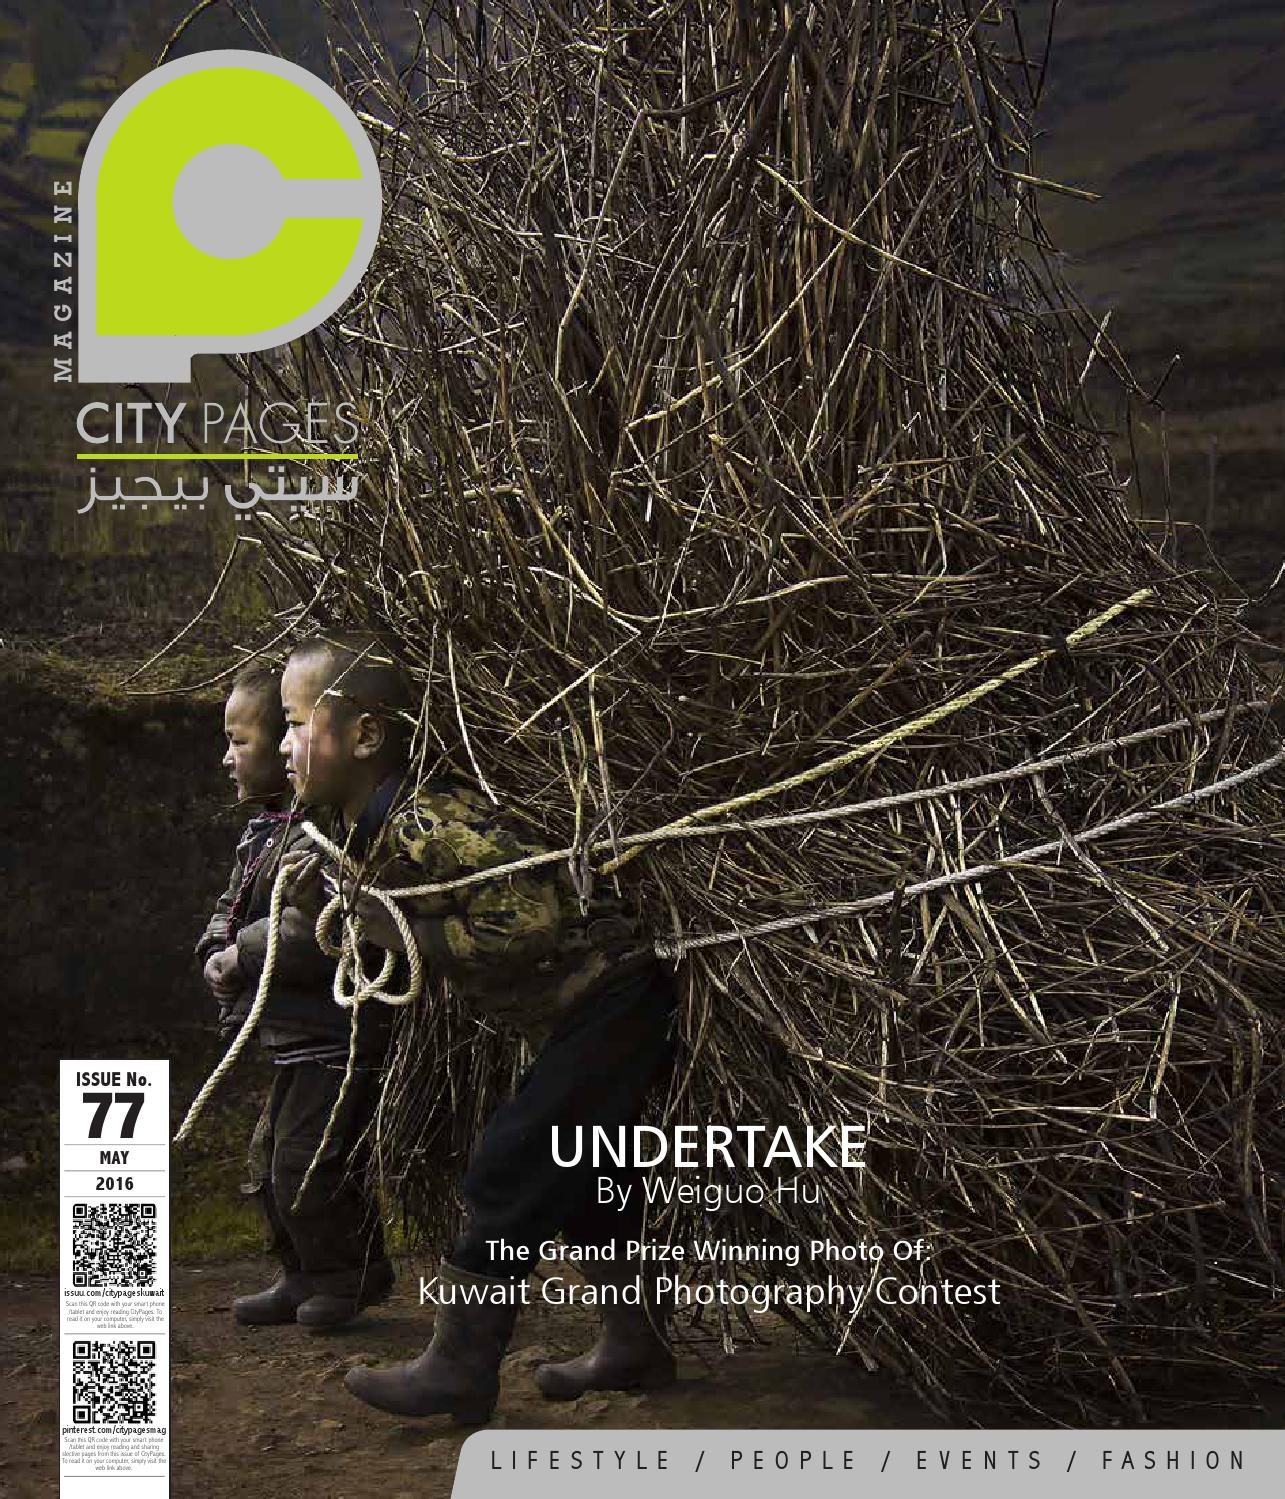 Citypages May 2016 online